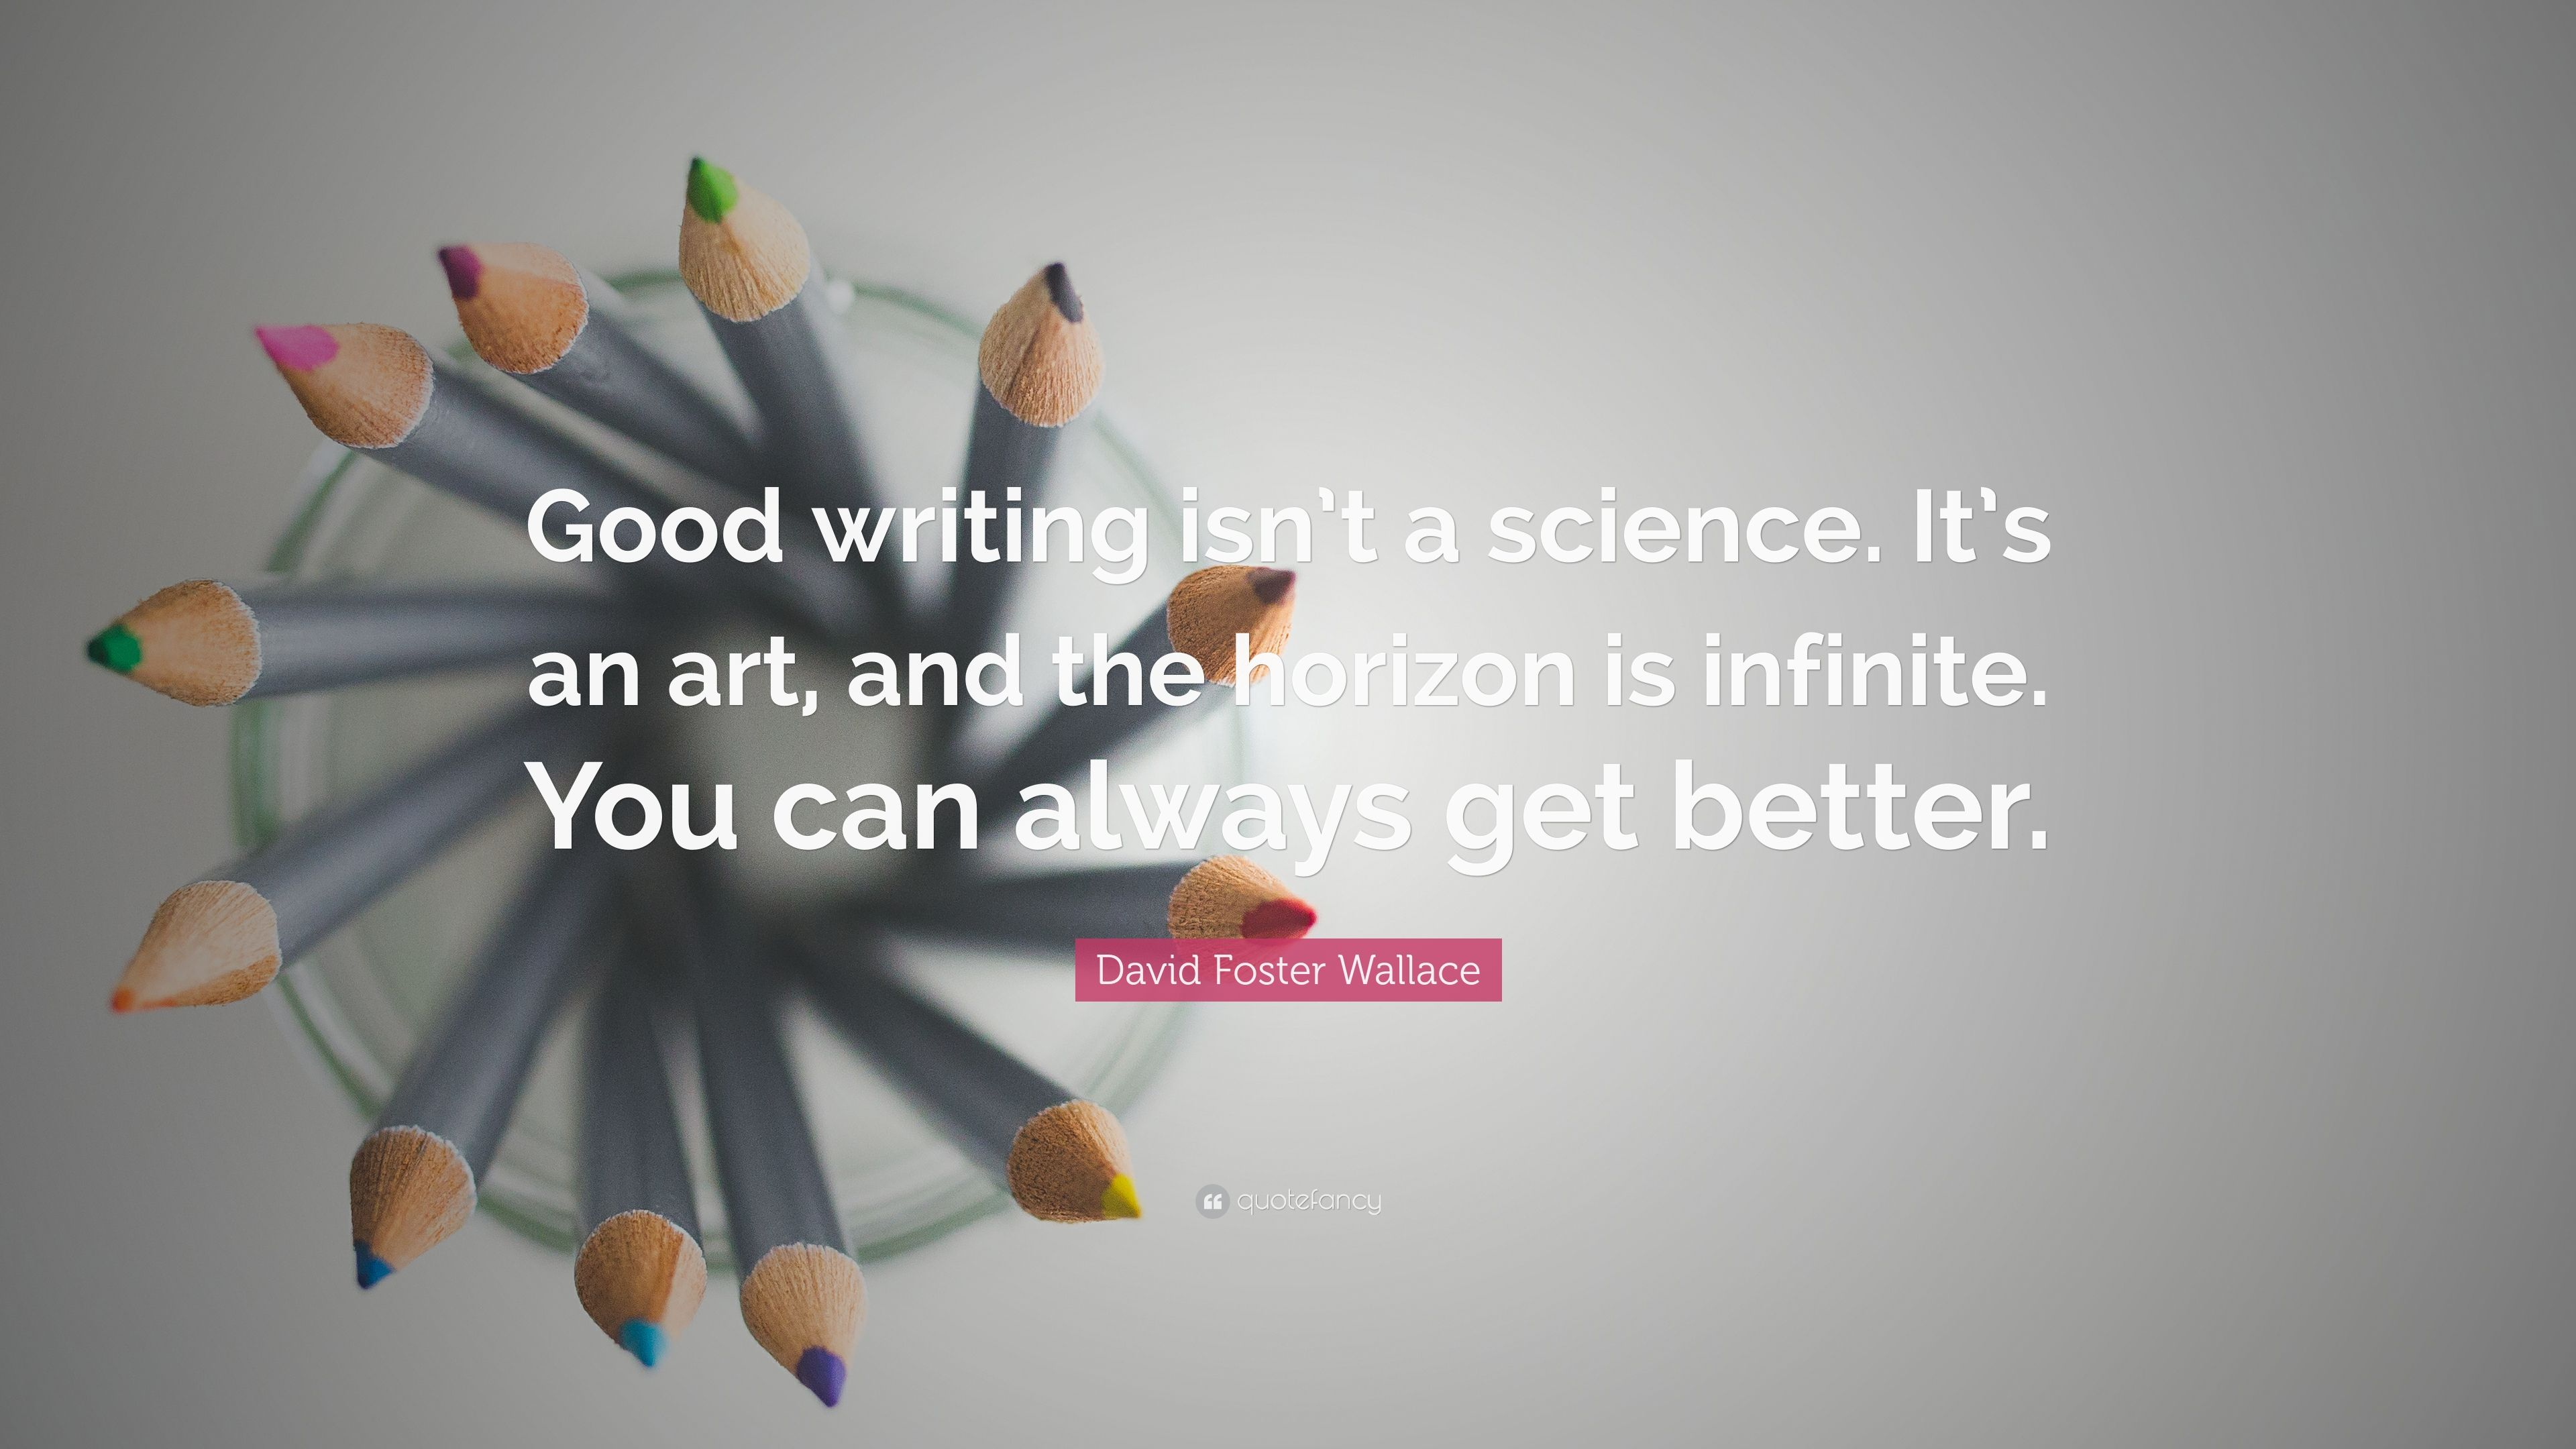 David Foster Wallace Quotes Wallpaper David Foster Wallace Quote Good Writing Isn T A Science